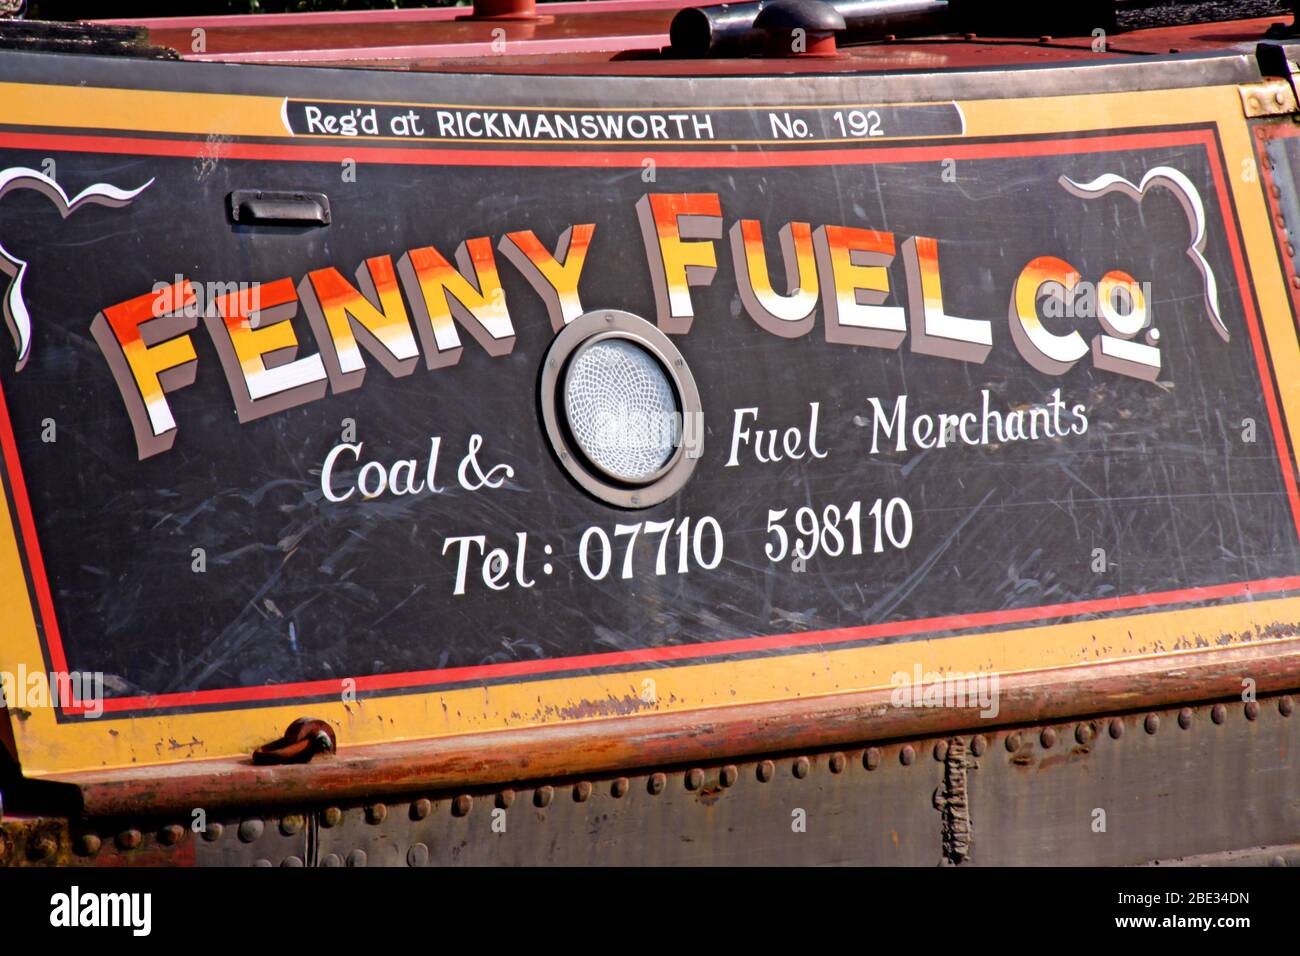 Dieses Stockfoto: British Canal & River Trust, funktionierende Kanalbargenboote, Northwich, Cheshire Ring - Fenny Fuel Co - Rickmansworth no 192 - 2BE34D